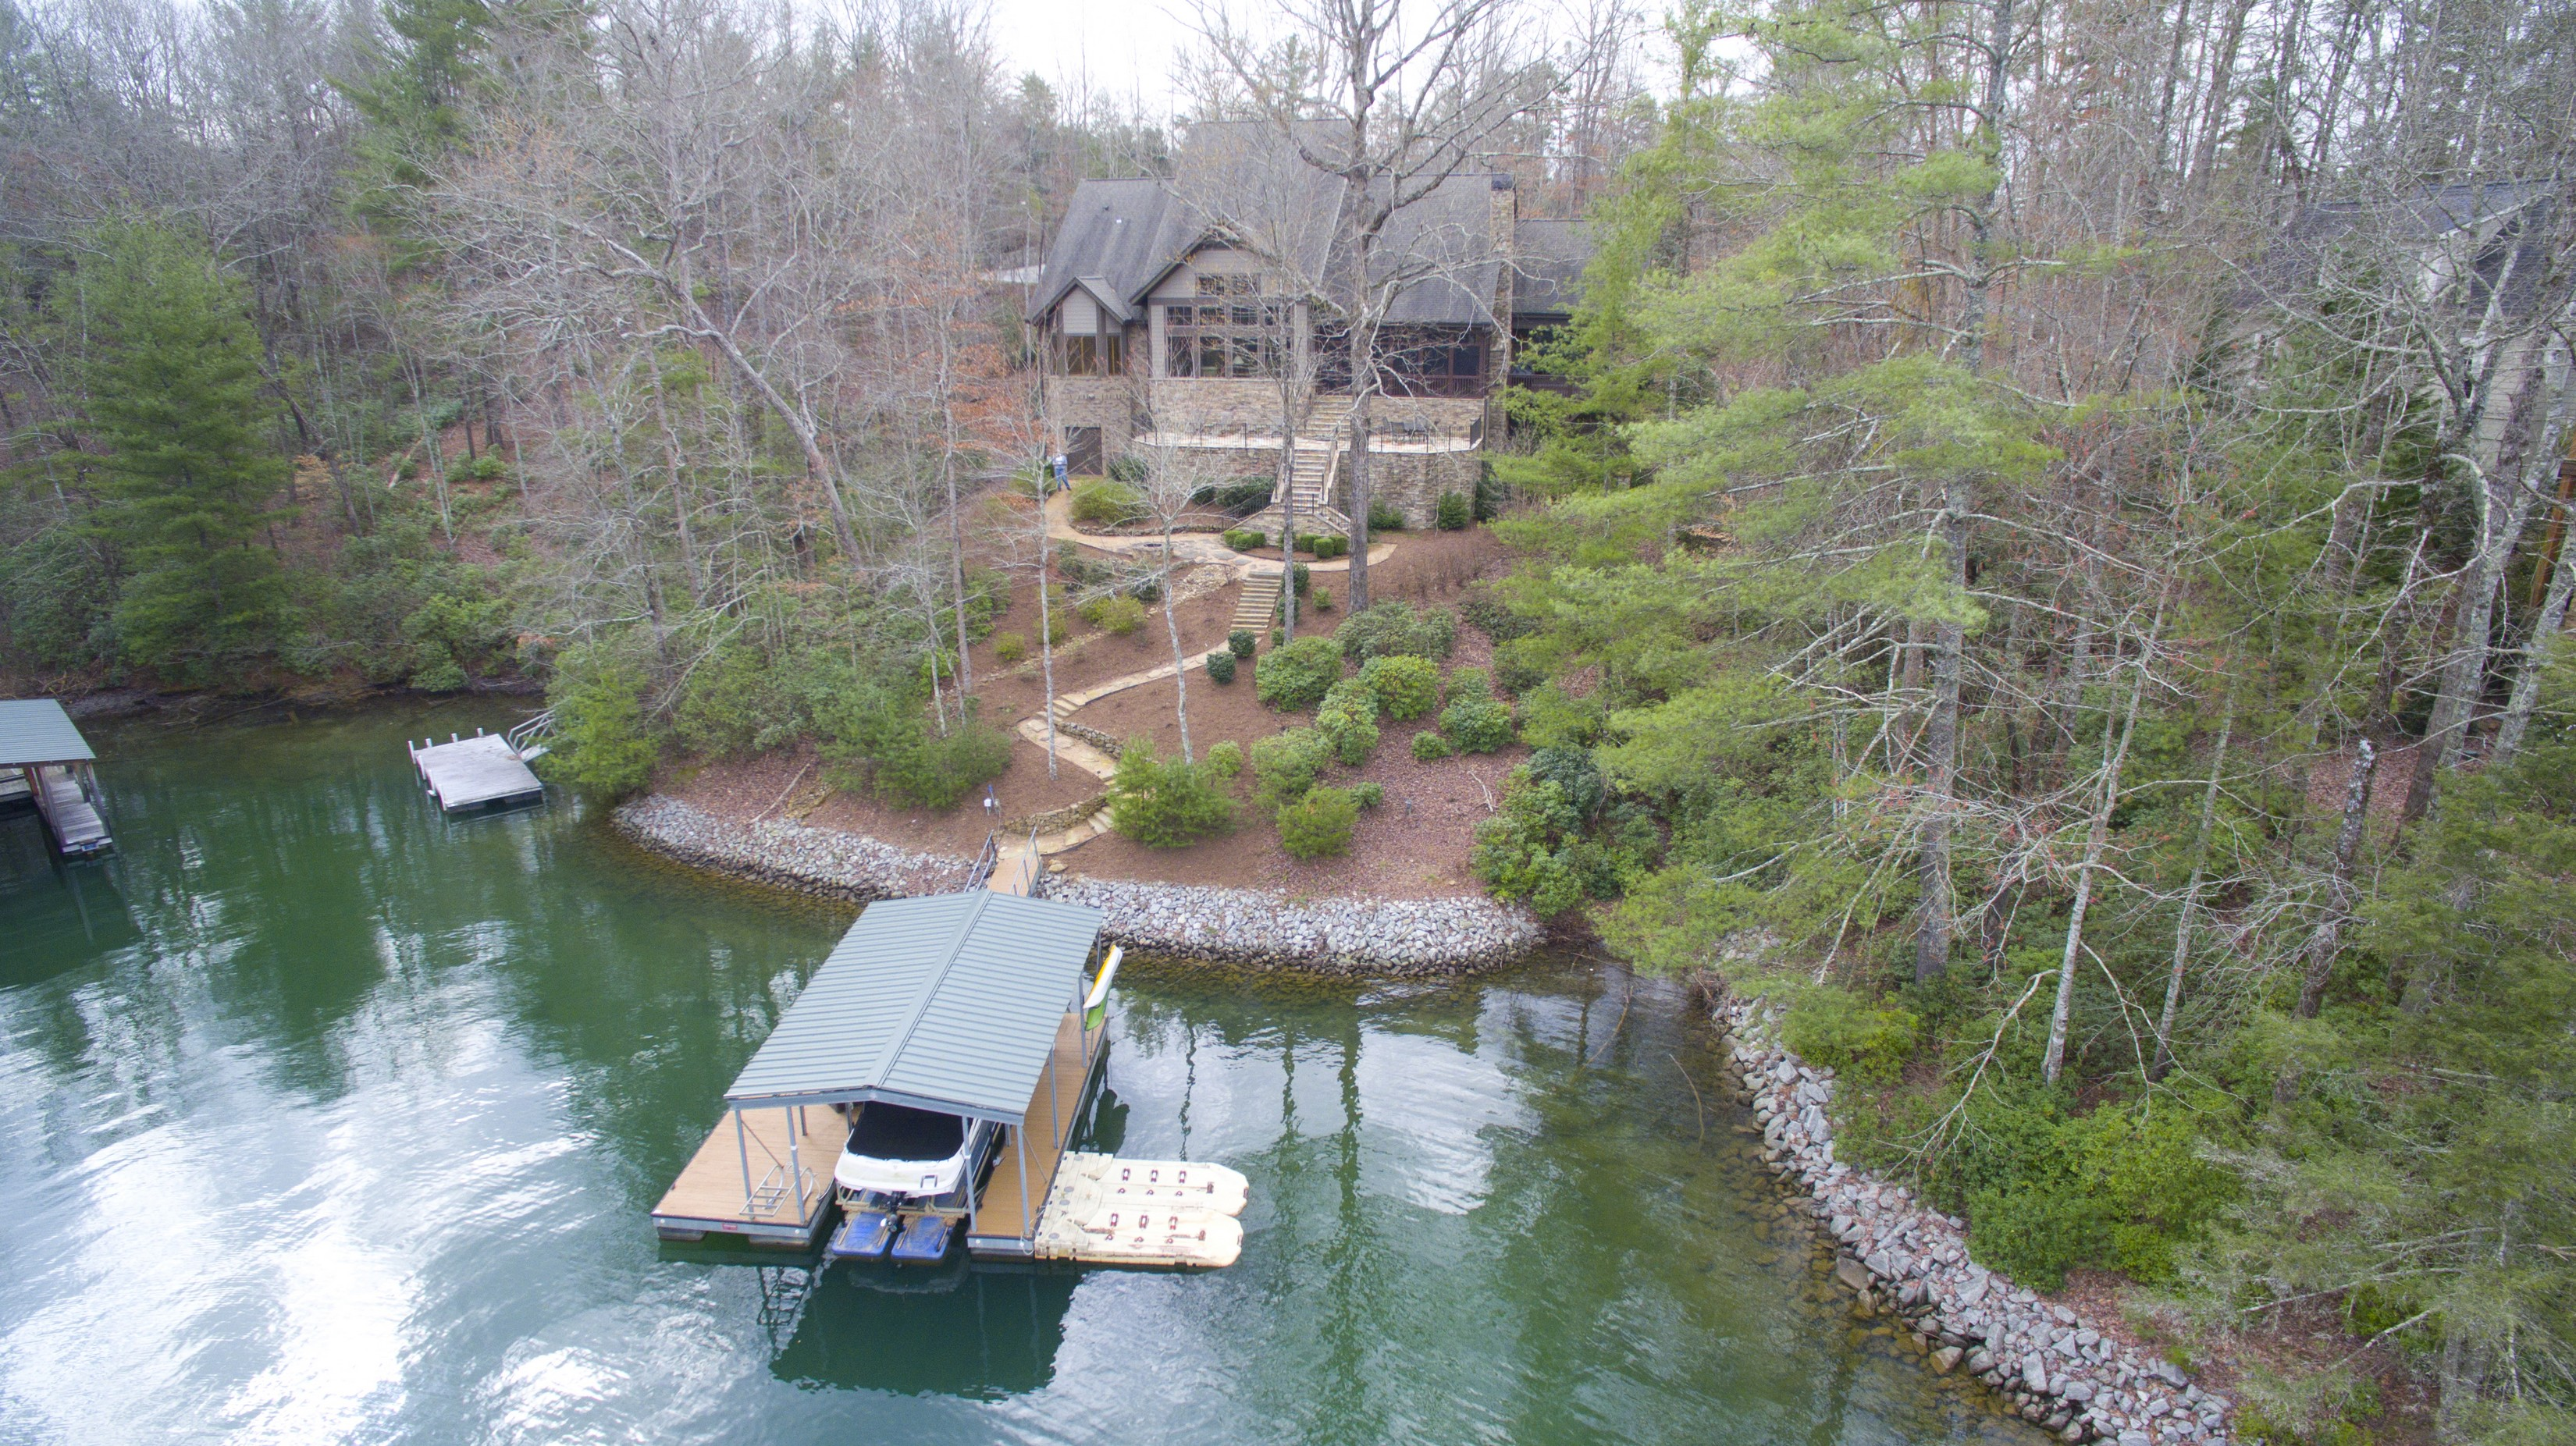 Single Family Home for Sale at A True Estate Feel to this Waterfront Home 104 Paw Paw Way The Cliffs At Keowee Vineyards, Sunset, South Carolina, 29685 United States